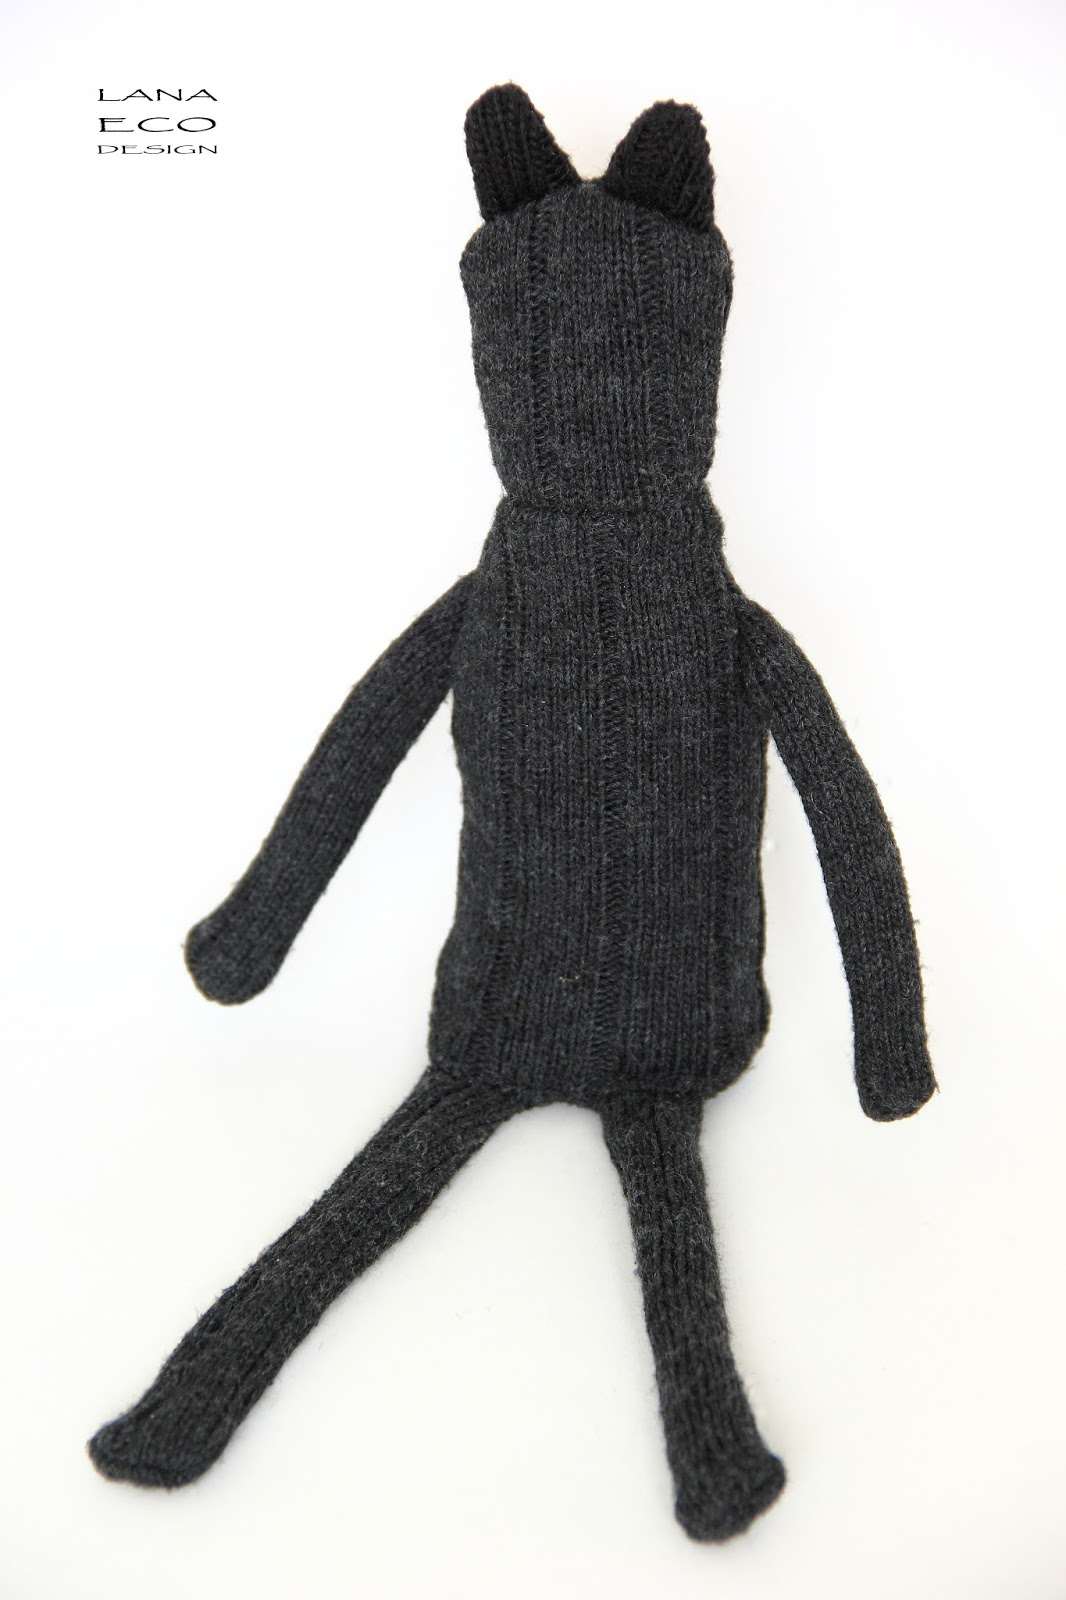 hand-sewed-minimal-design-peluche-soft-toy-stuffed-animal-handmade-eco-friendly-fatto-a-mano